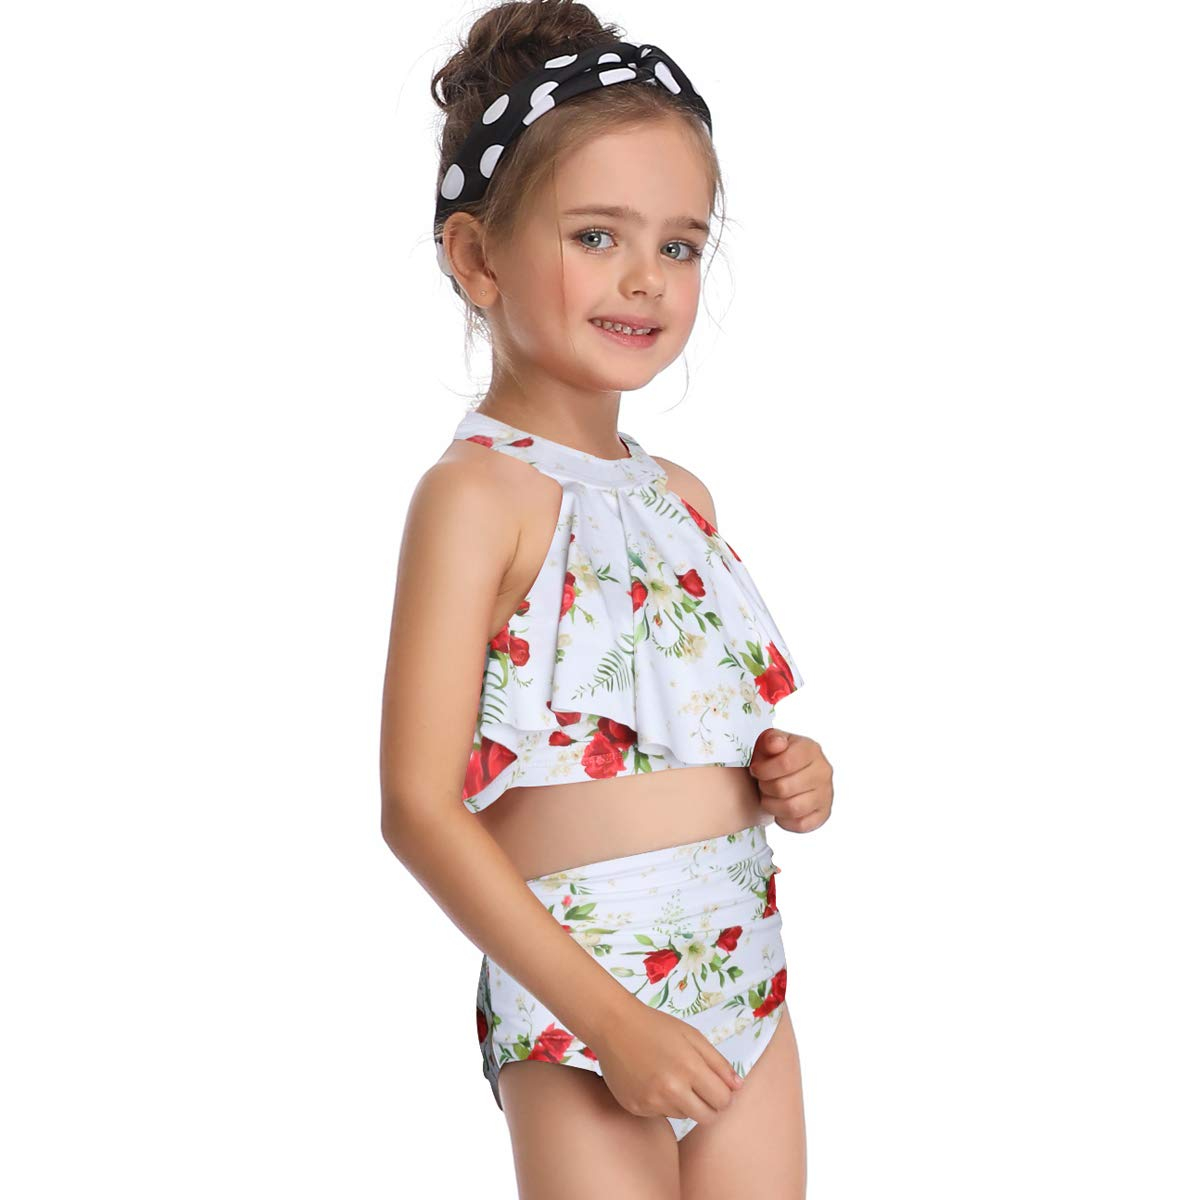 Uhnice Girls Swimsuits Mother and Daughter Swimwear Two Pieces Bikini Set